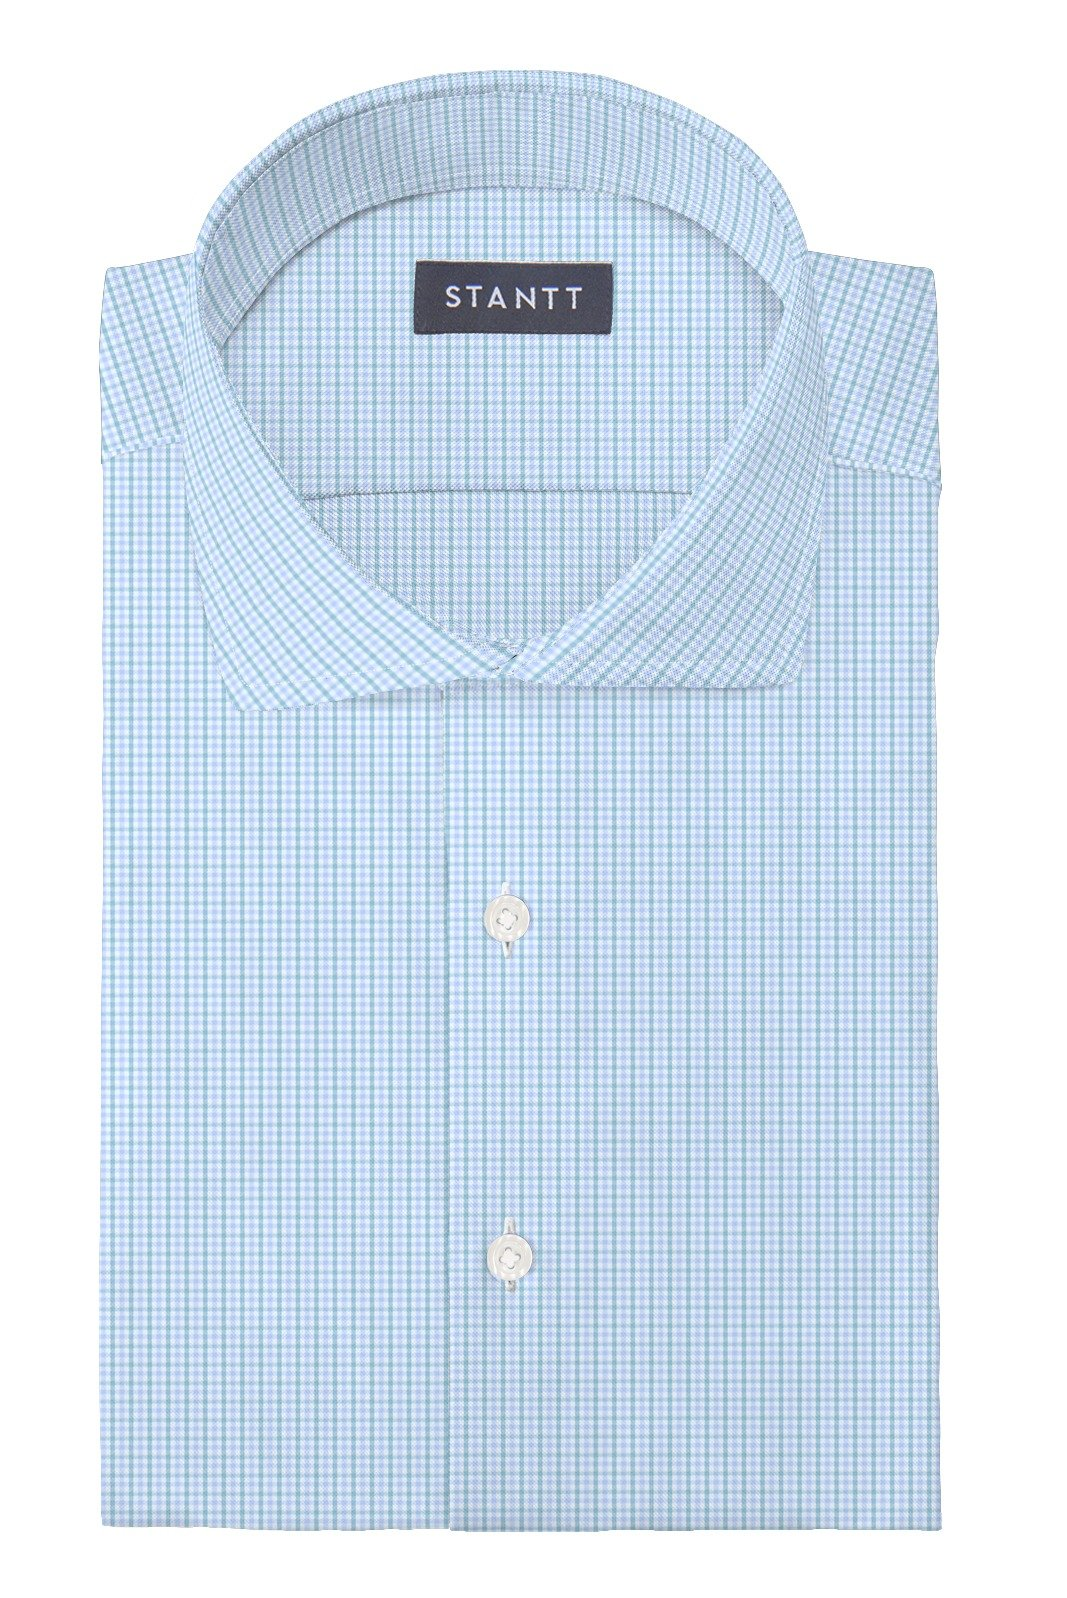 Matrix Sky Blue and Lime Tattersall: Cutaway Collar, French Cuff